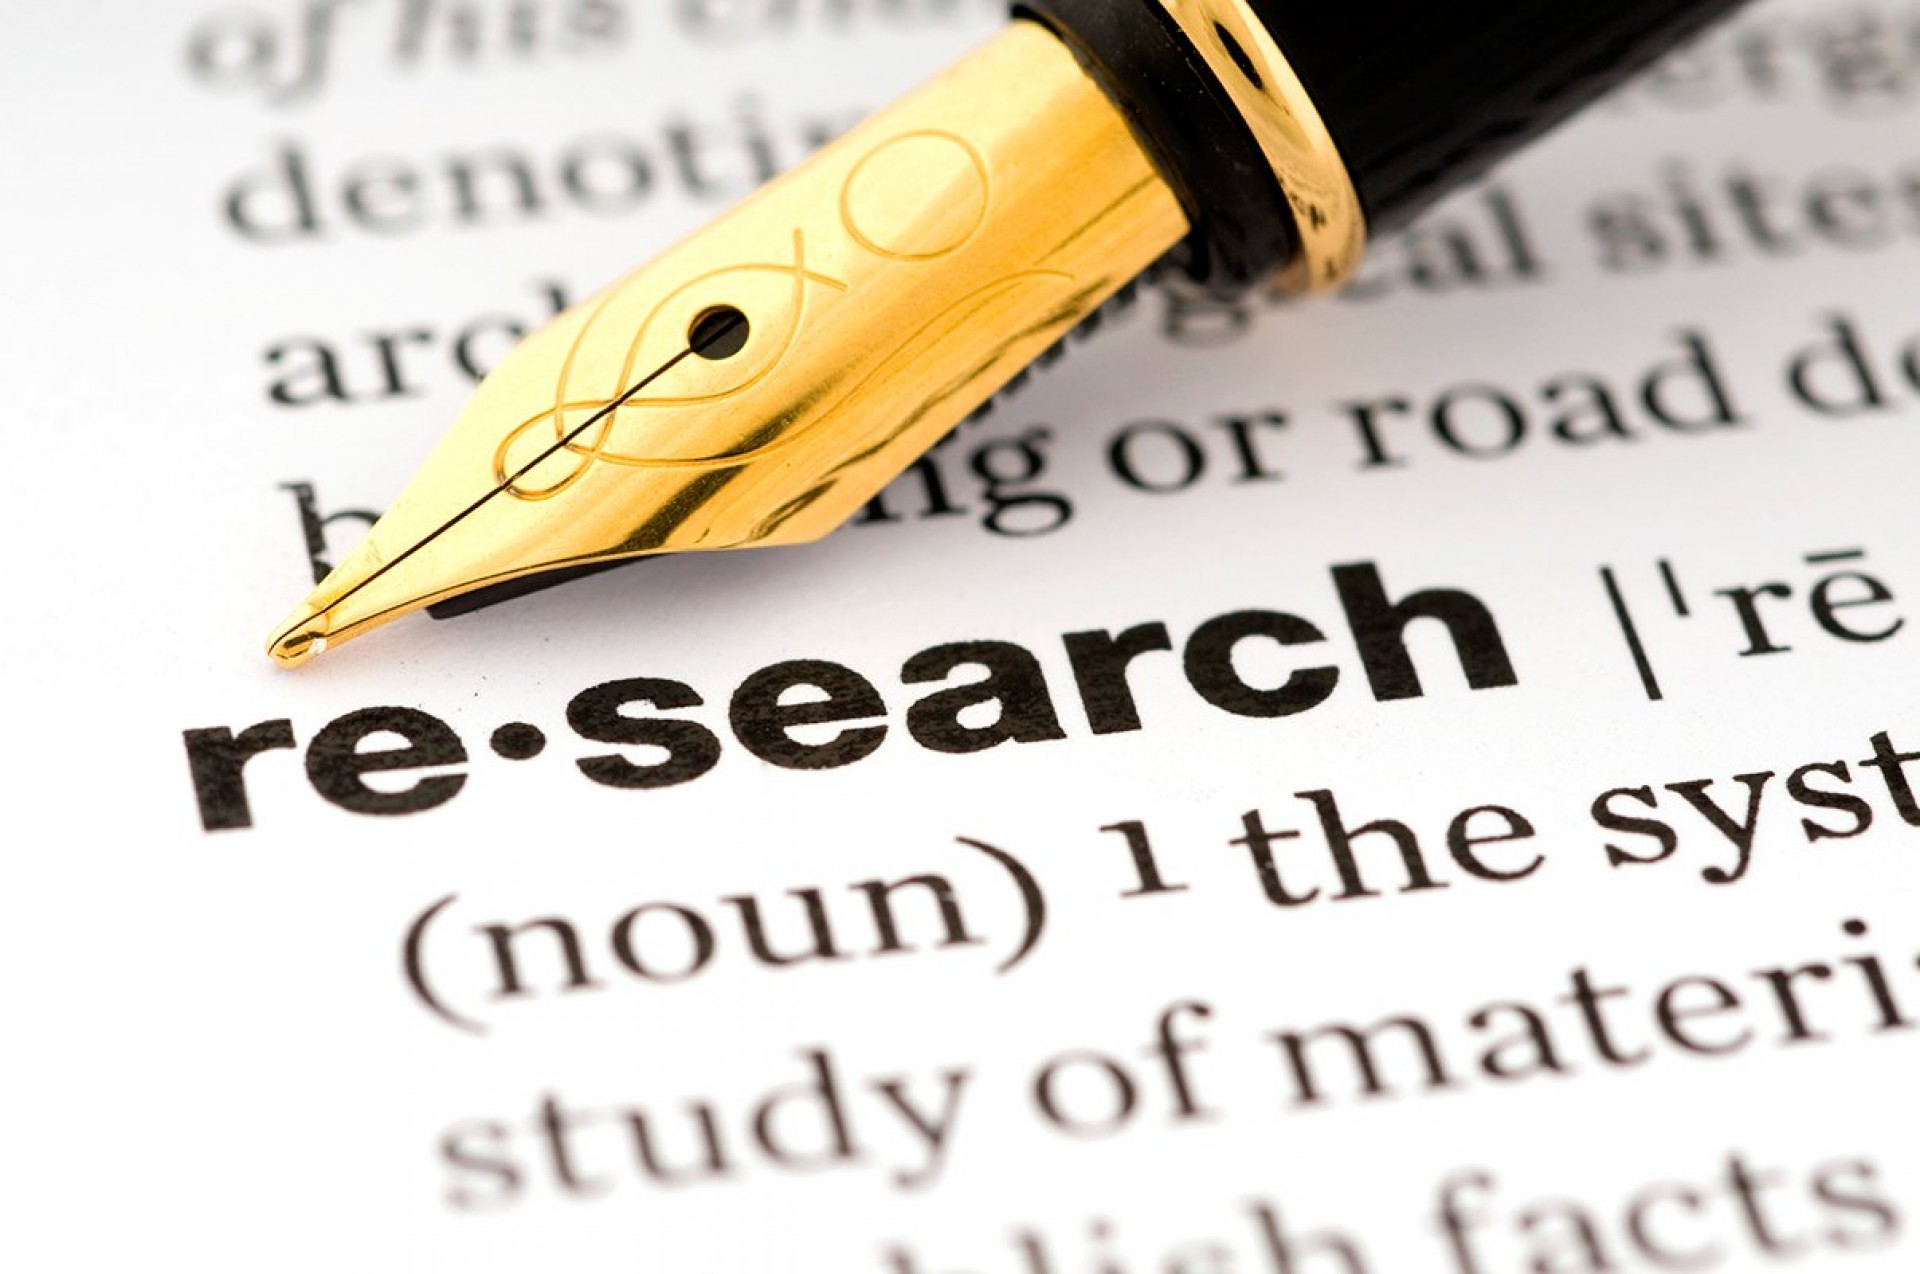 017 Best Topics For Research Paper In The Philippines Outstanding 1920